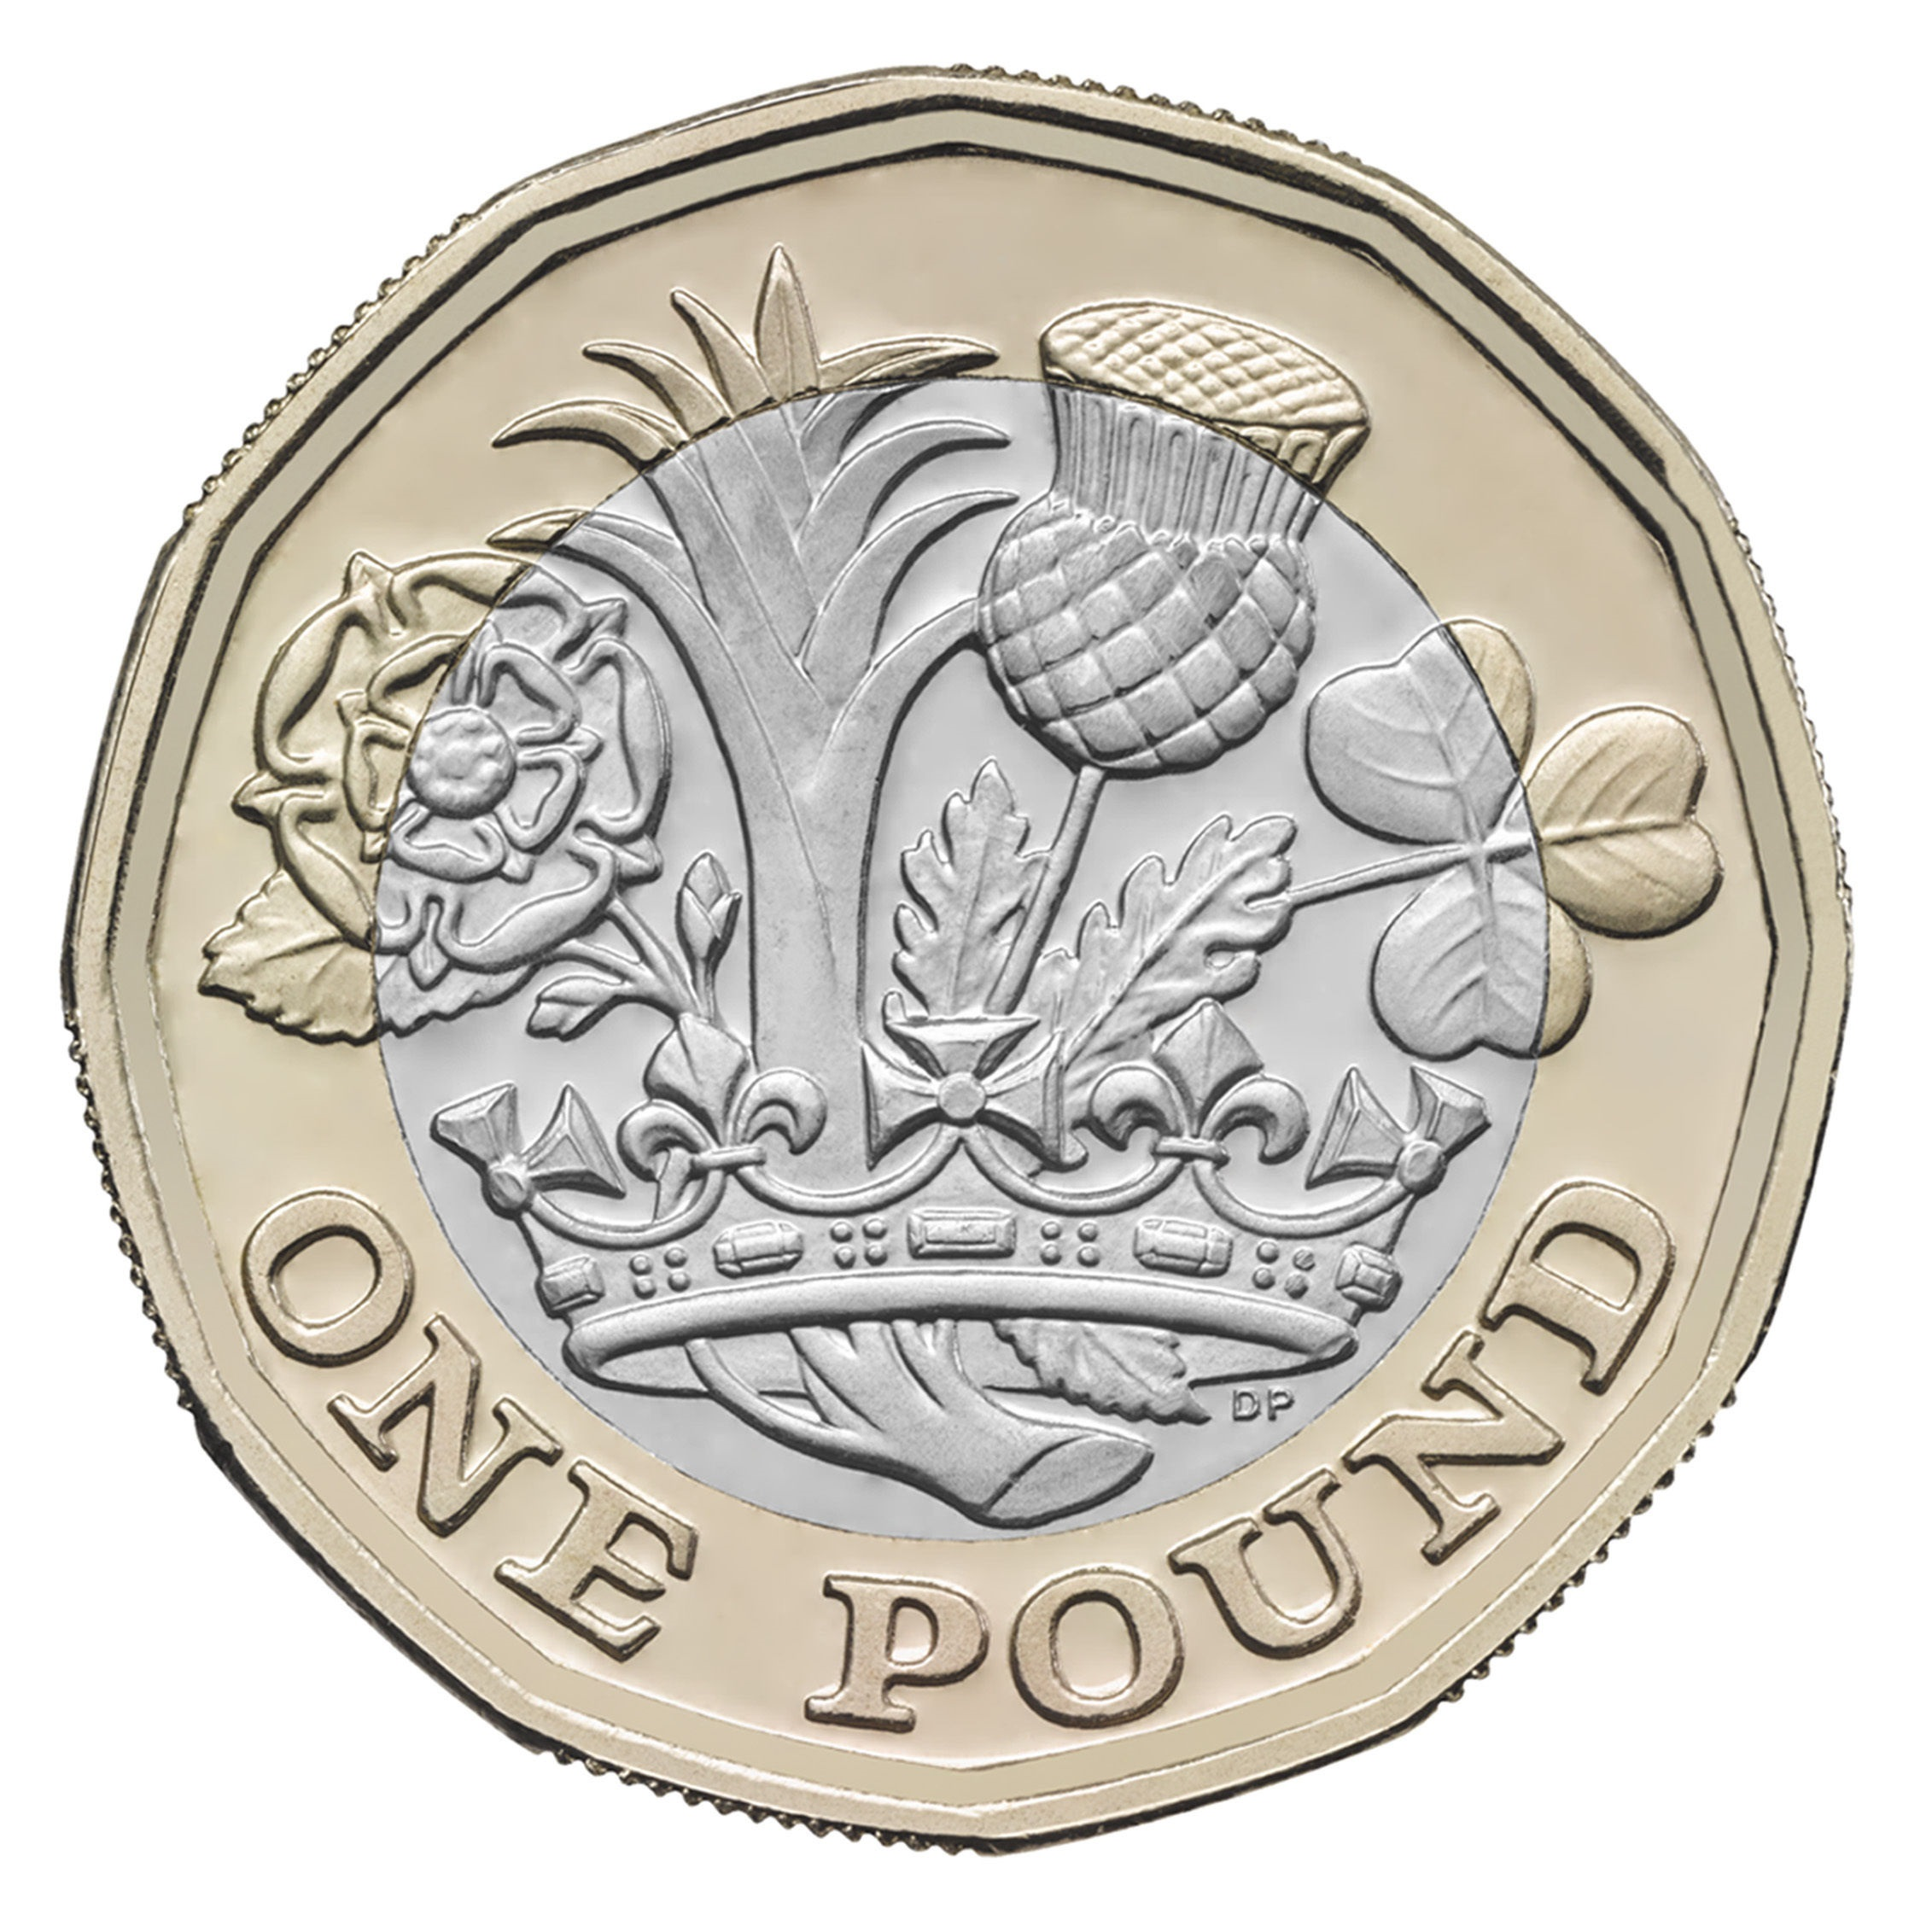 The new 12-sided pound. Picture: PA